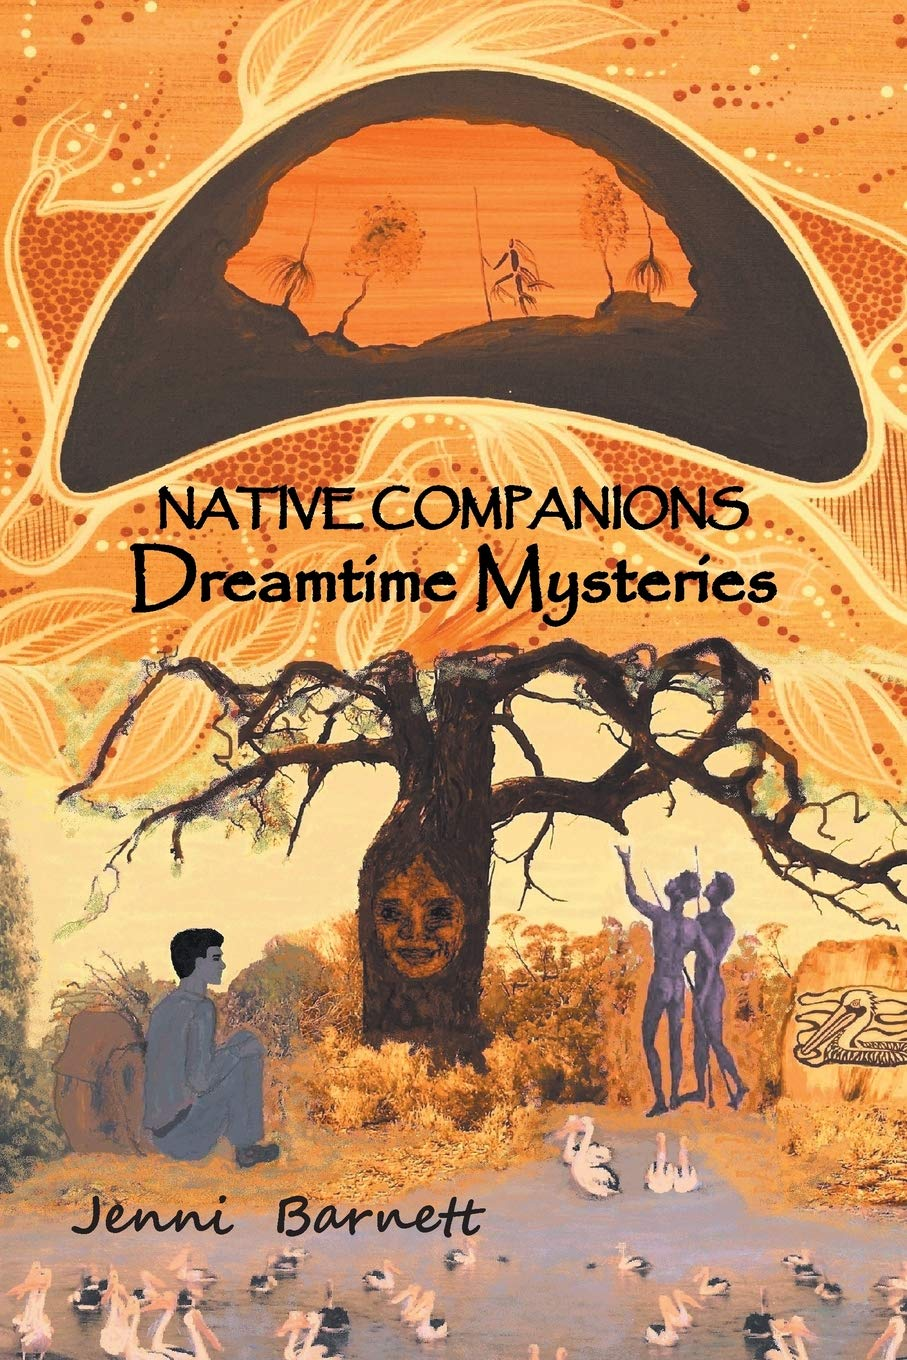 NATIVE COMPANIONS: DREAMTIME MYSTERIES